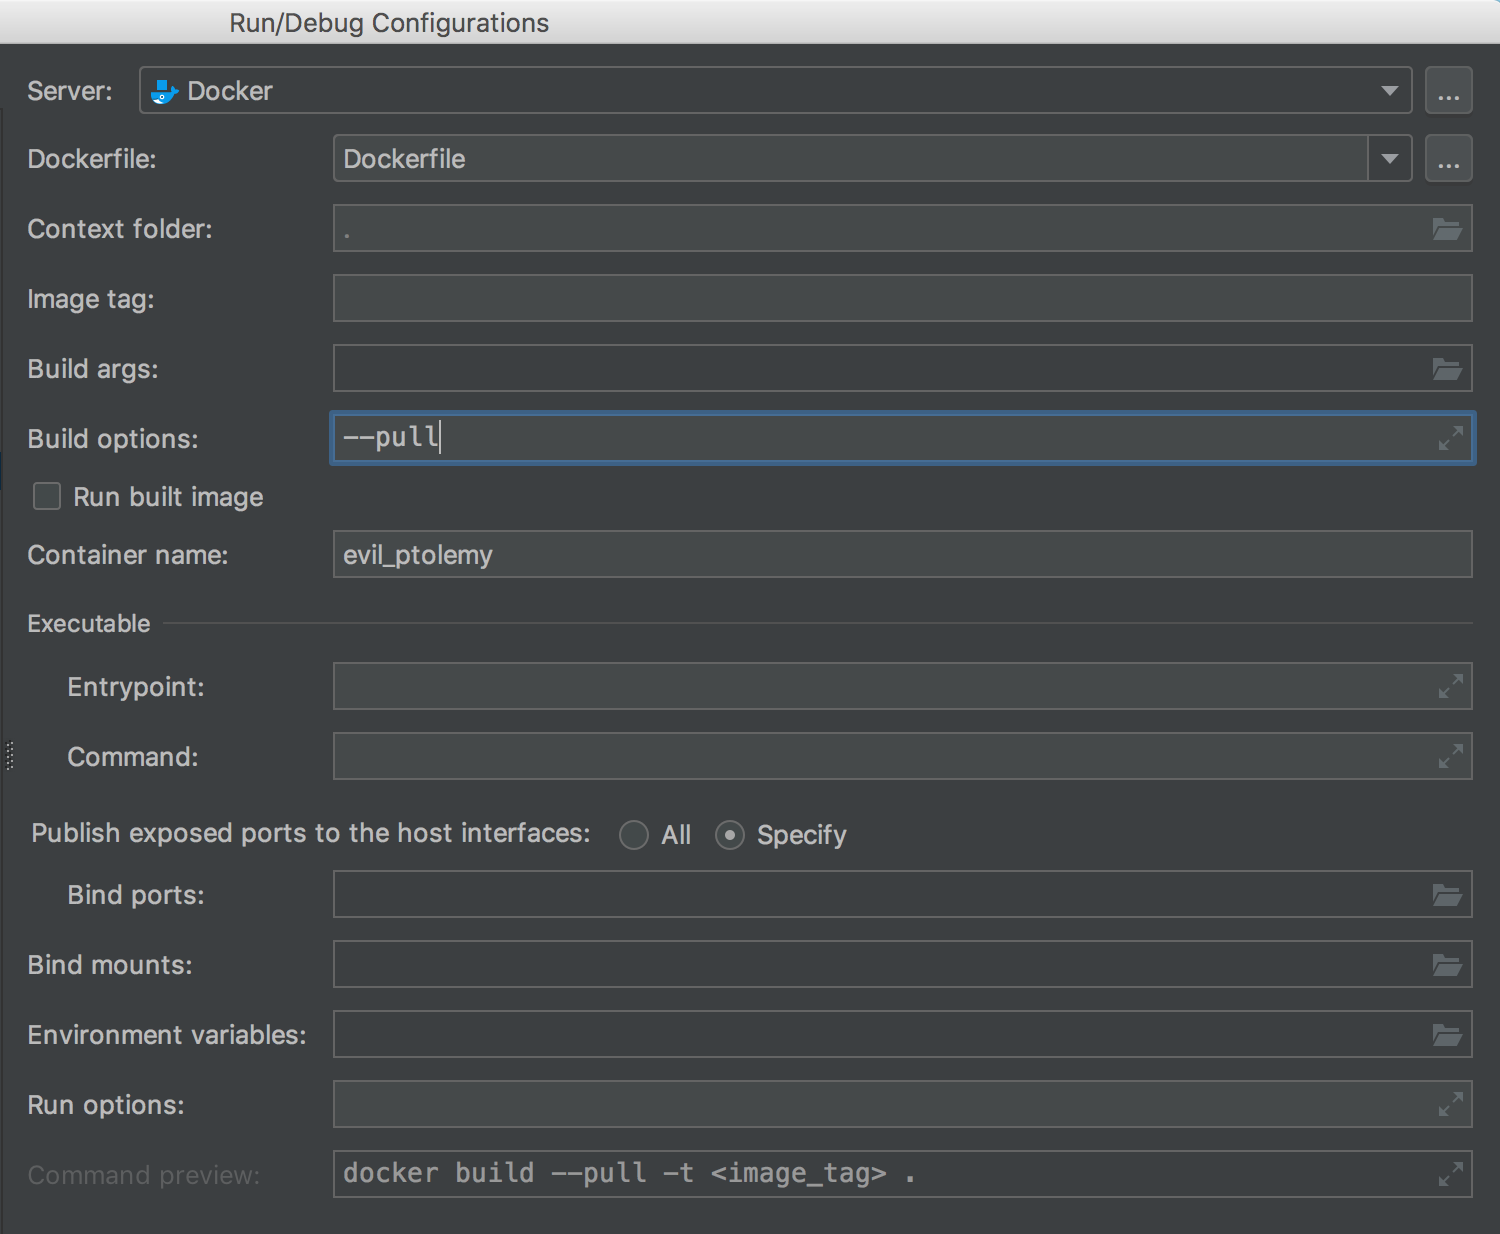 New Build options field in Dockerfile run configuration